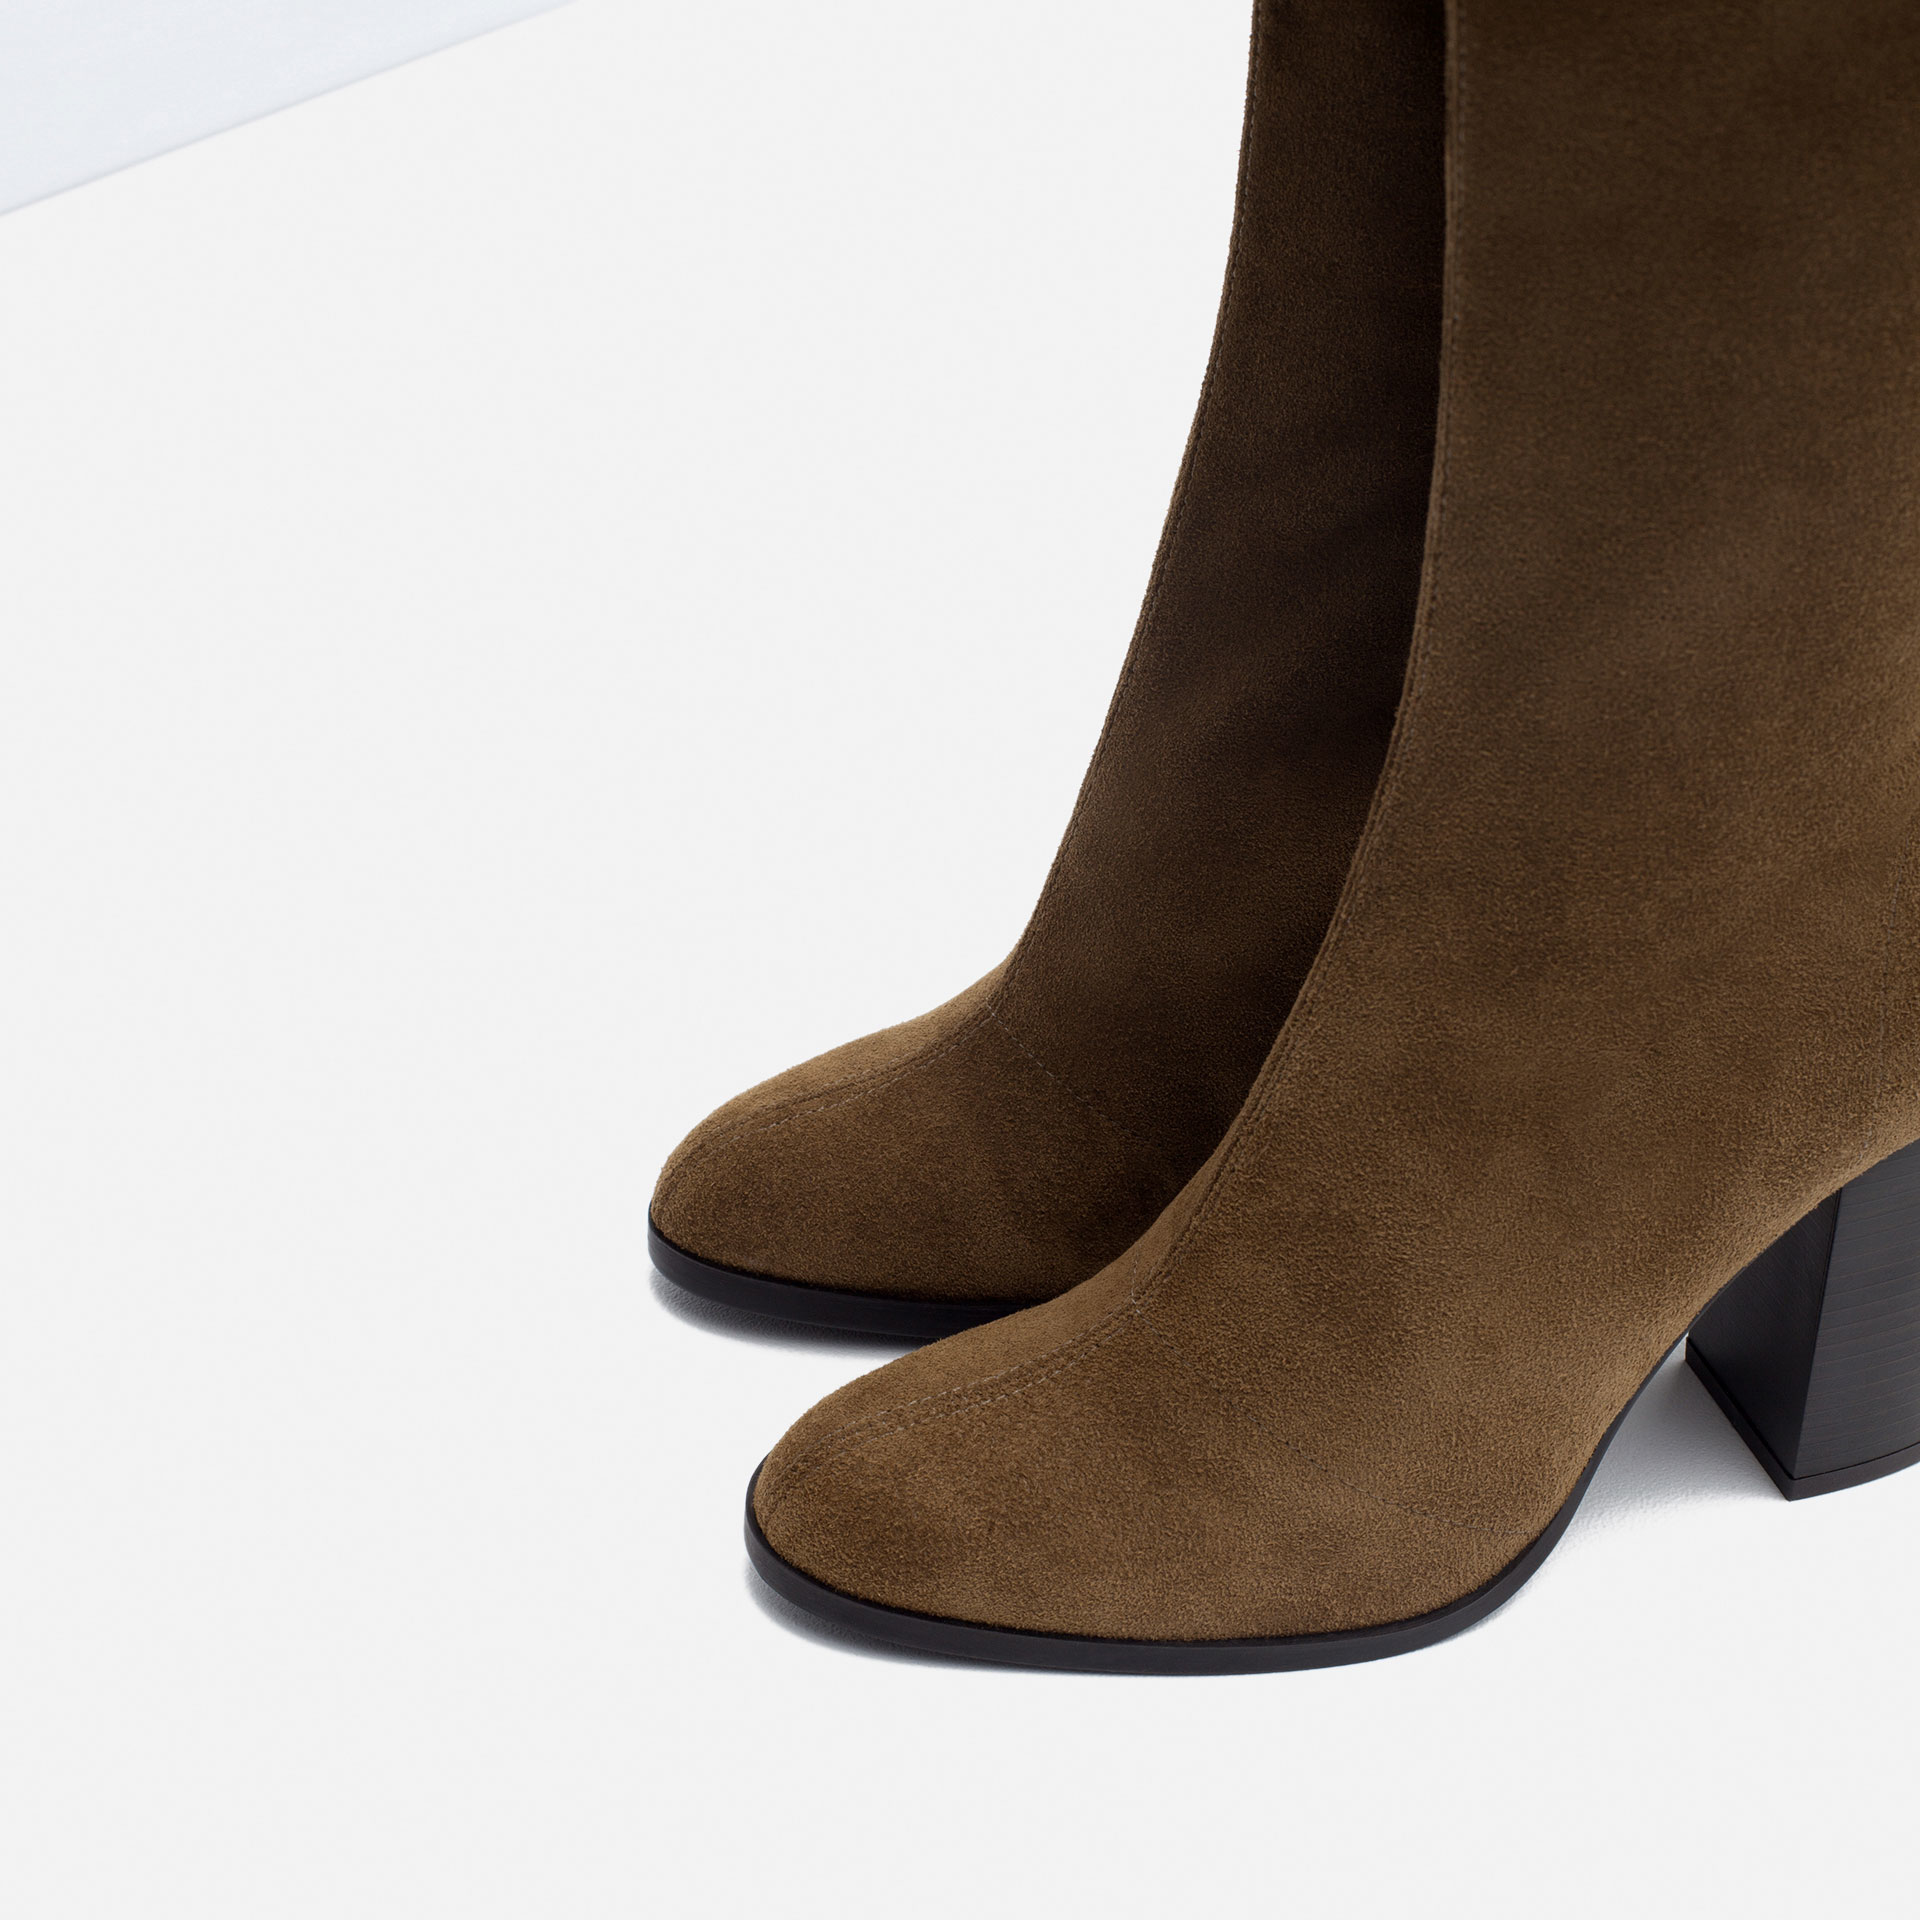 Brilliant Zara Suede Leather Block Heel Ankle Boot In Brown  Lyst